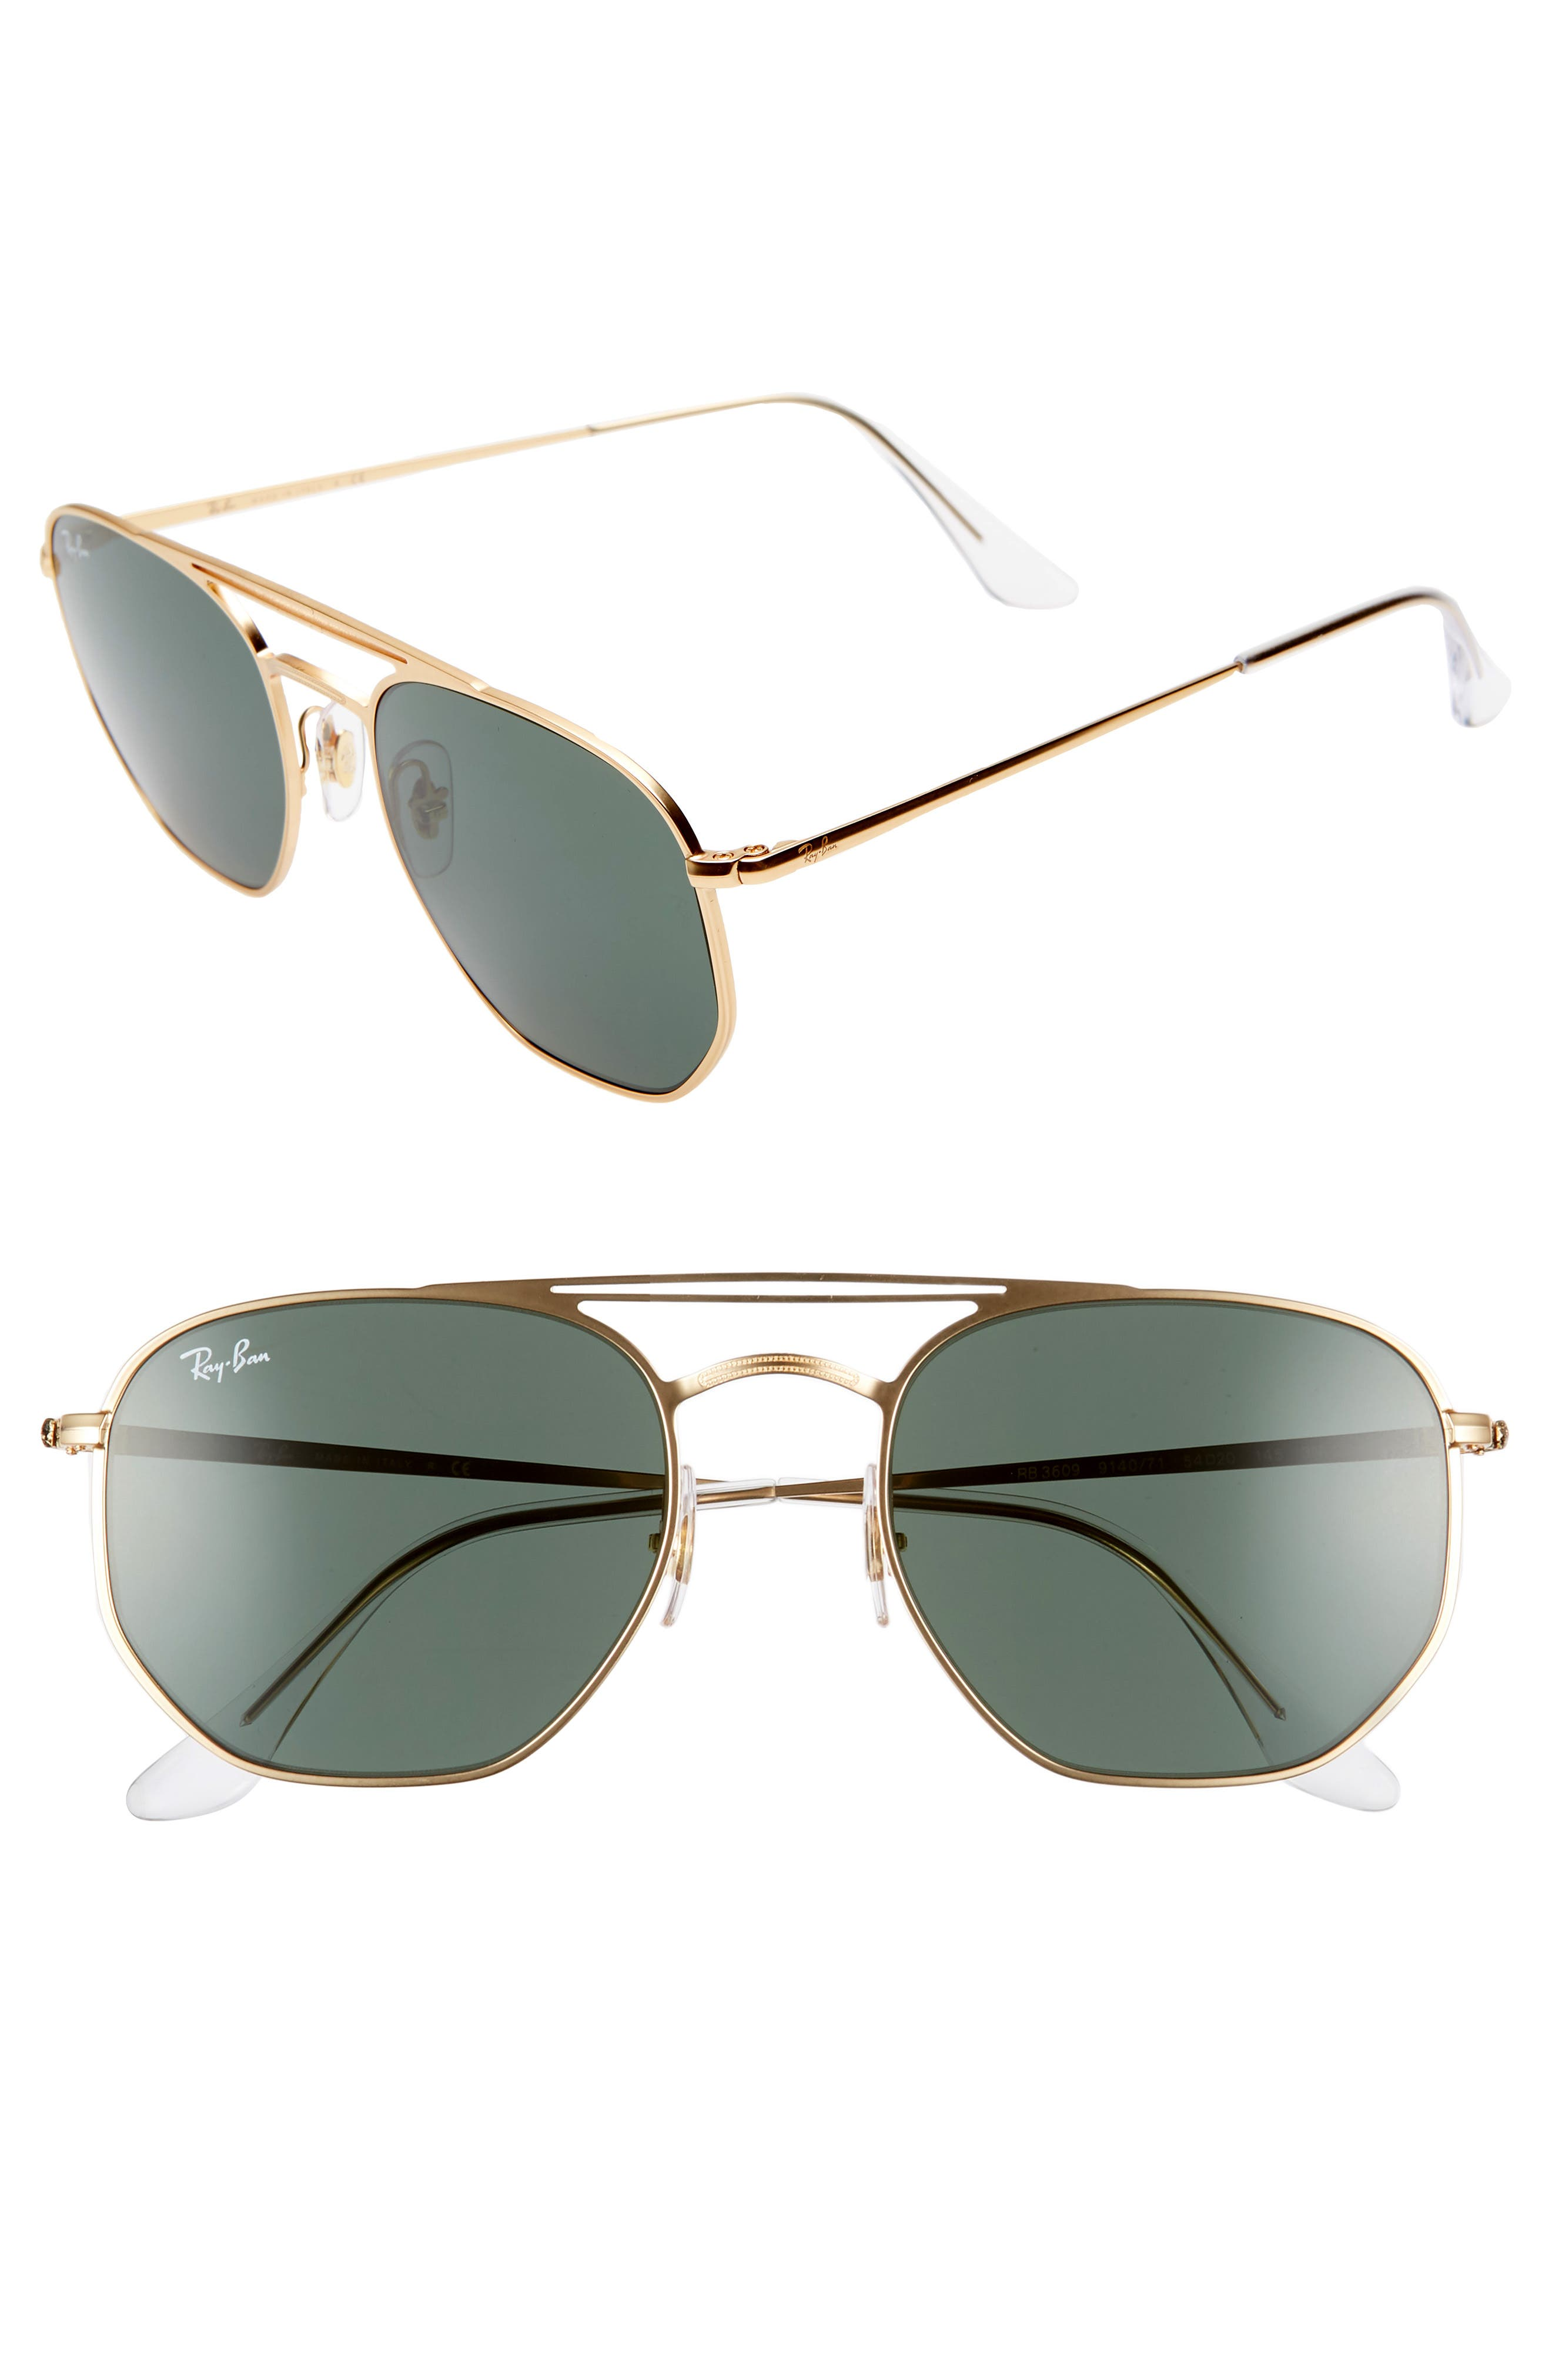 Ray-Ban 5m Aviator Sunglasses - Gold/ Green Solid